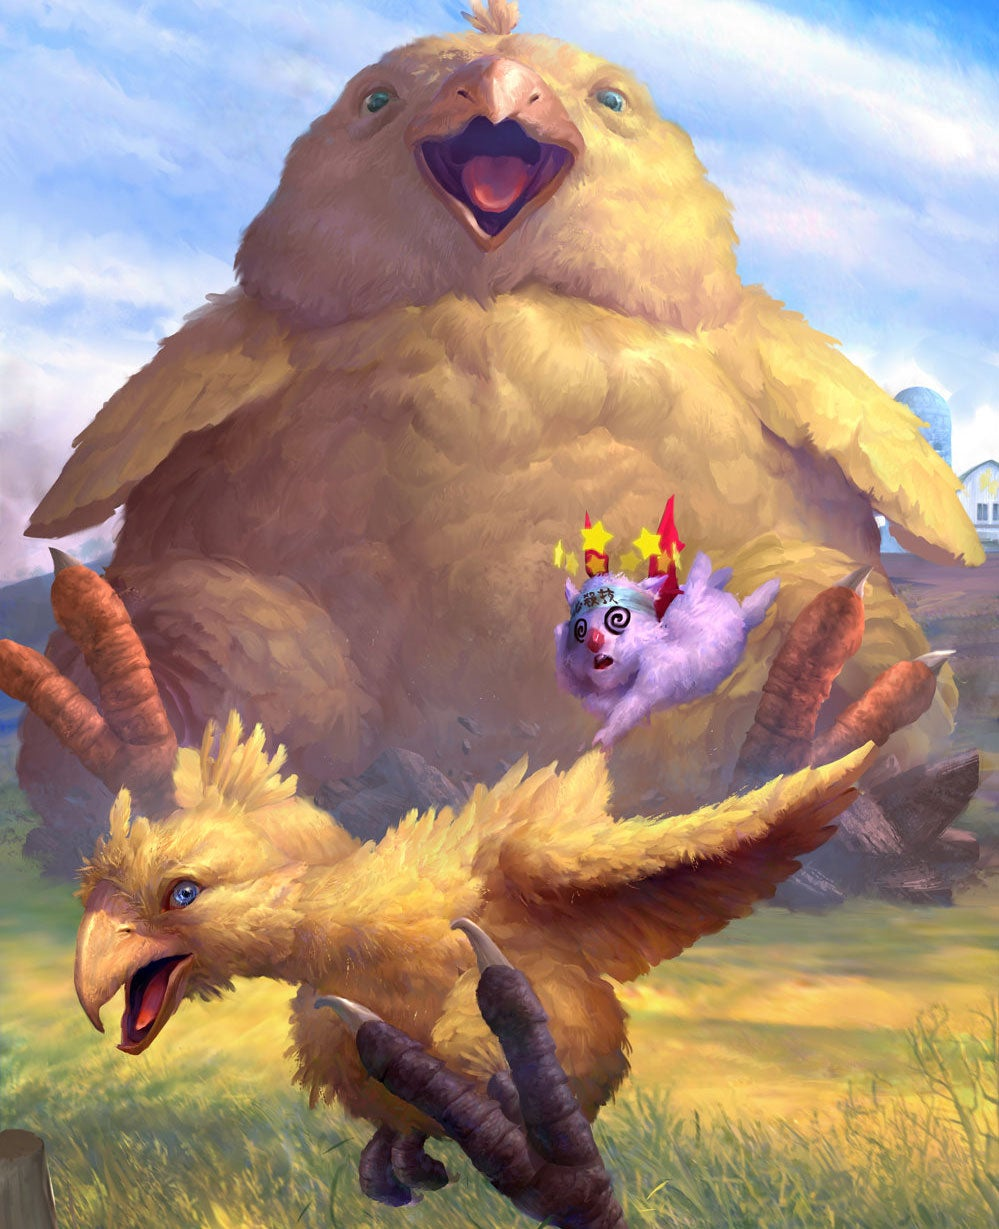 CHOCOBO HUNGERS